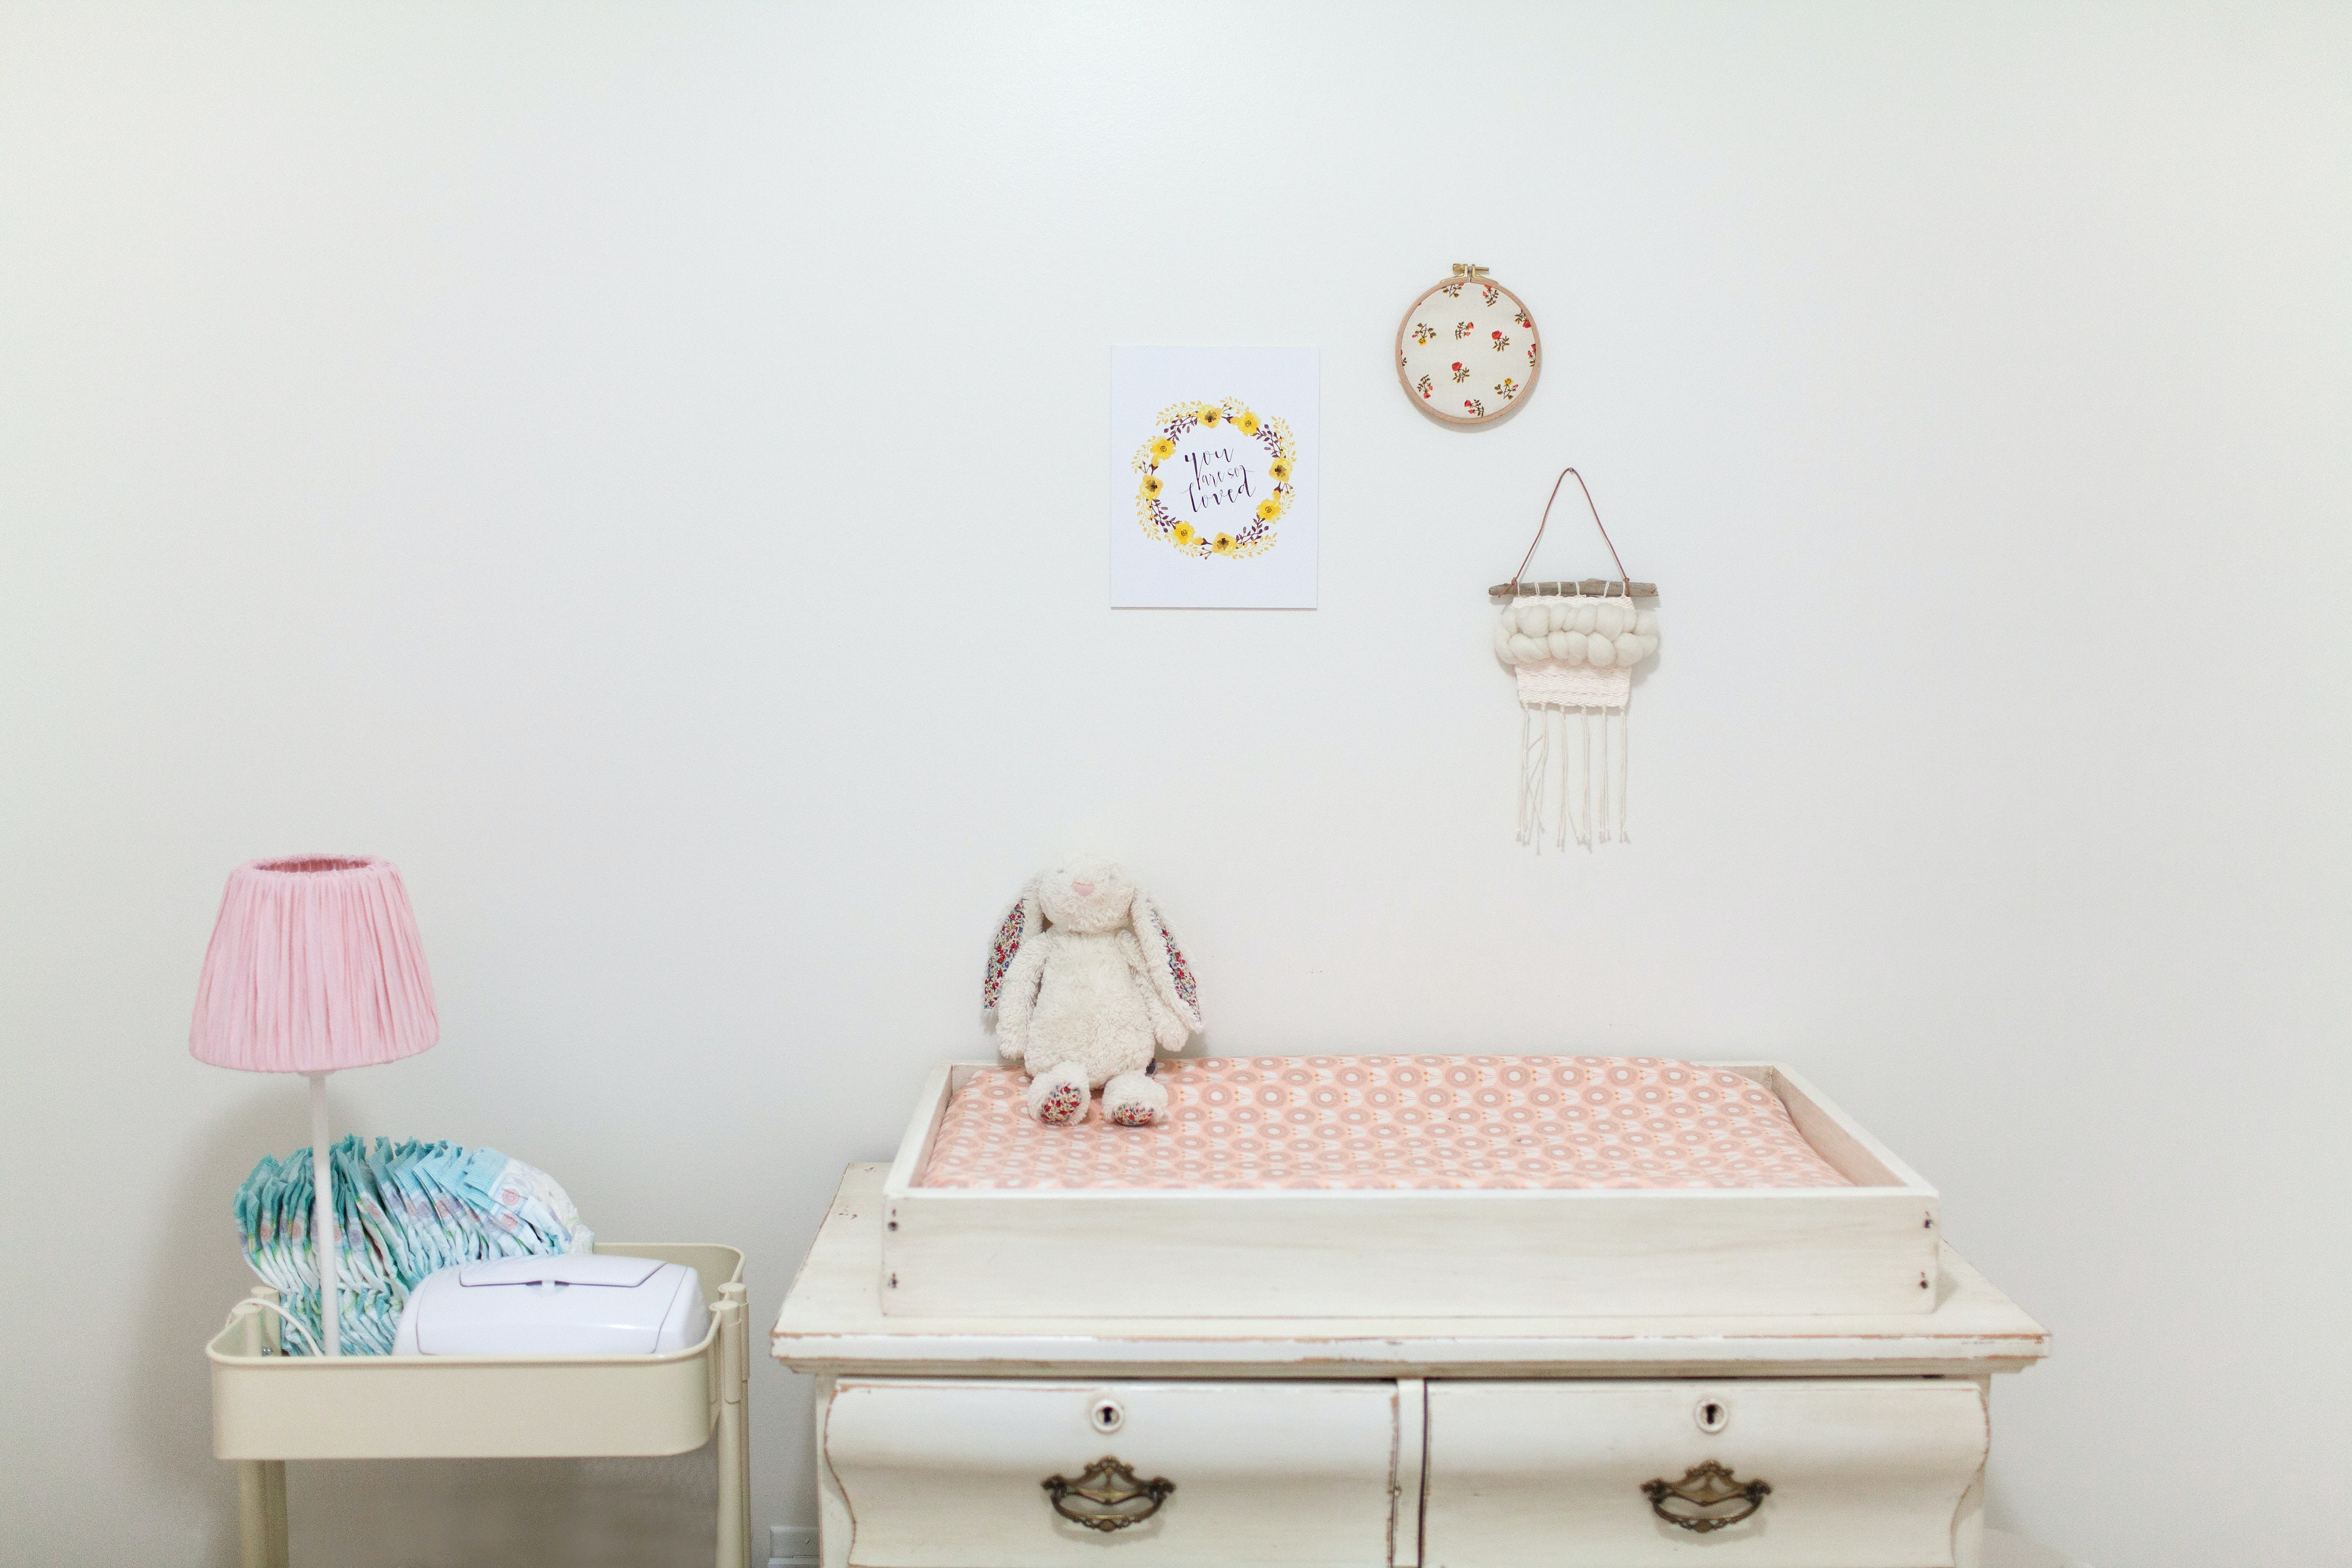 What to look for when buying a new dresser for your nursery